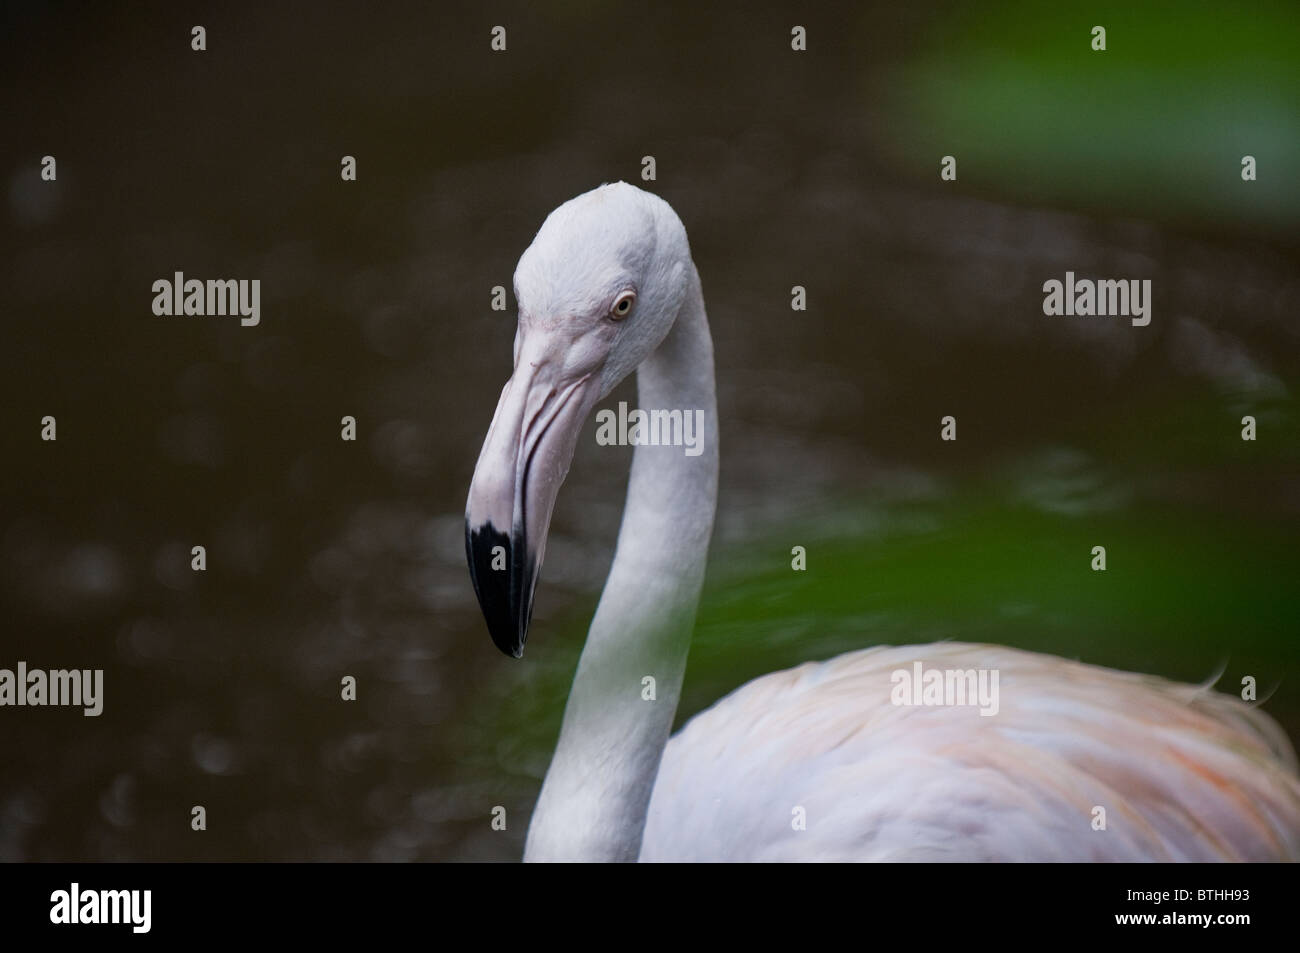 A Flamingo.  Photo by Gordon Scammell - Stock Image